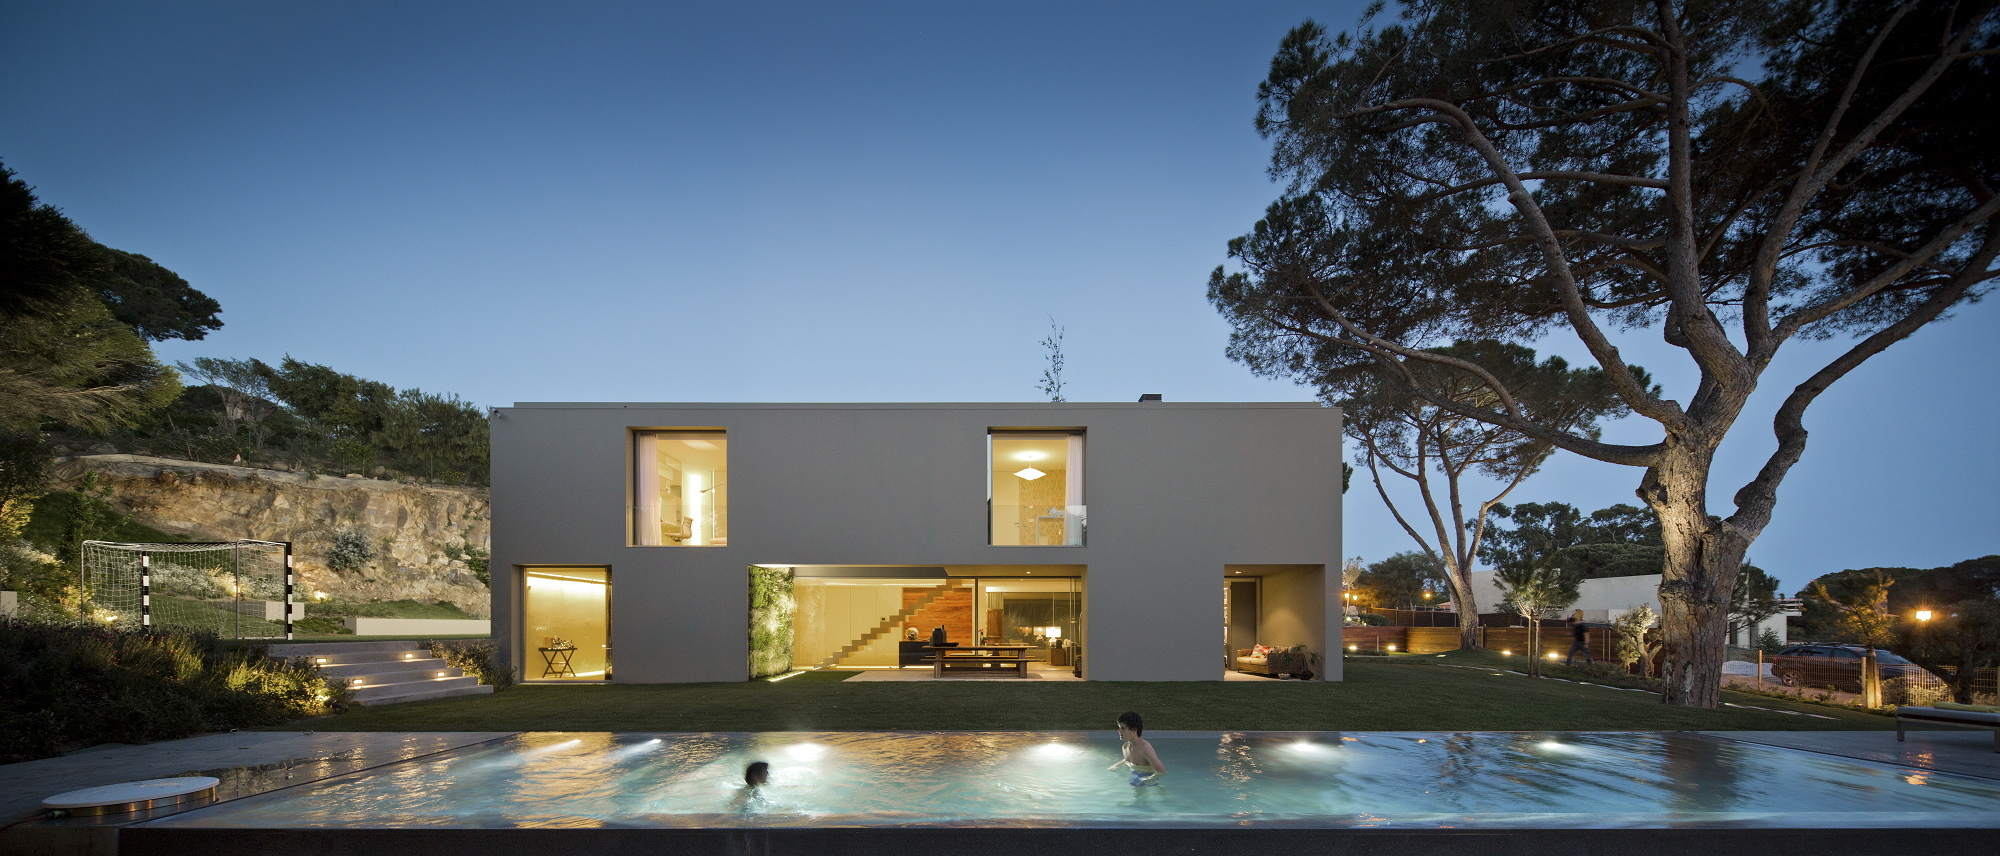 House in Quinta Patino  Frederico Valsassina Arquitectos  ArchDaily